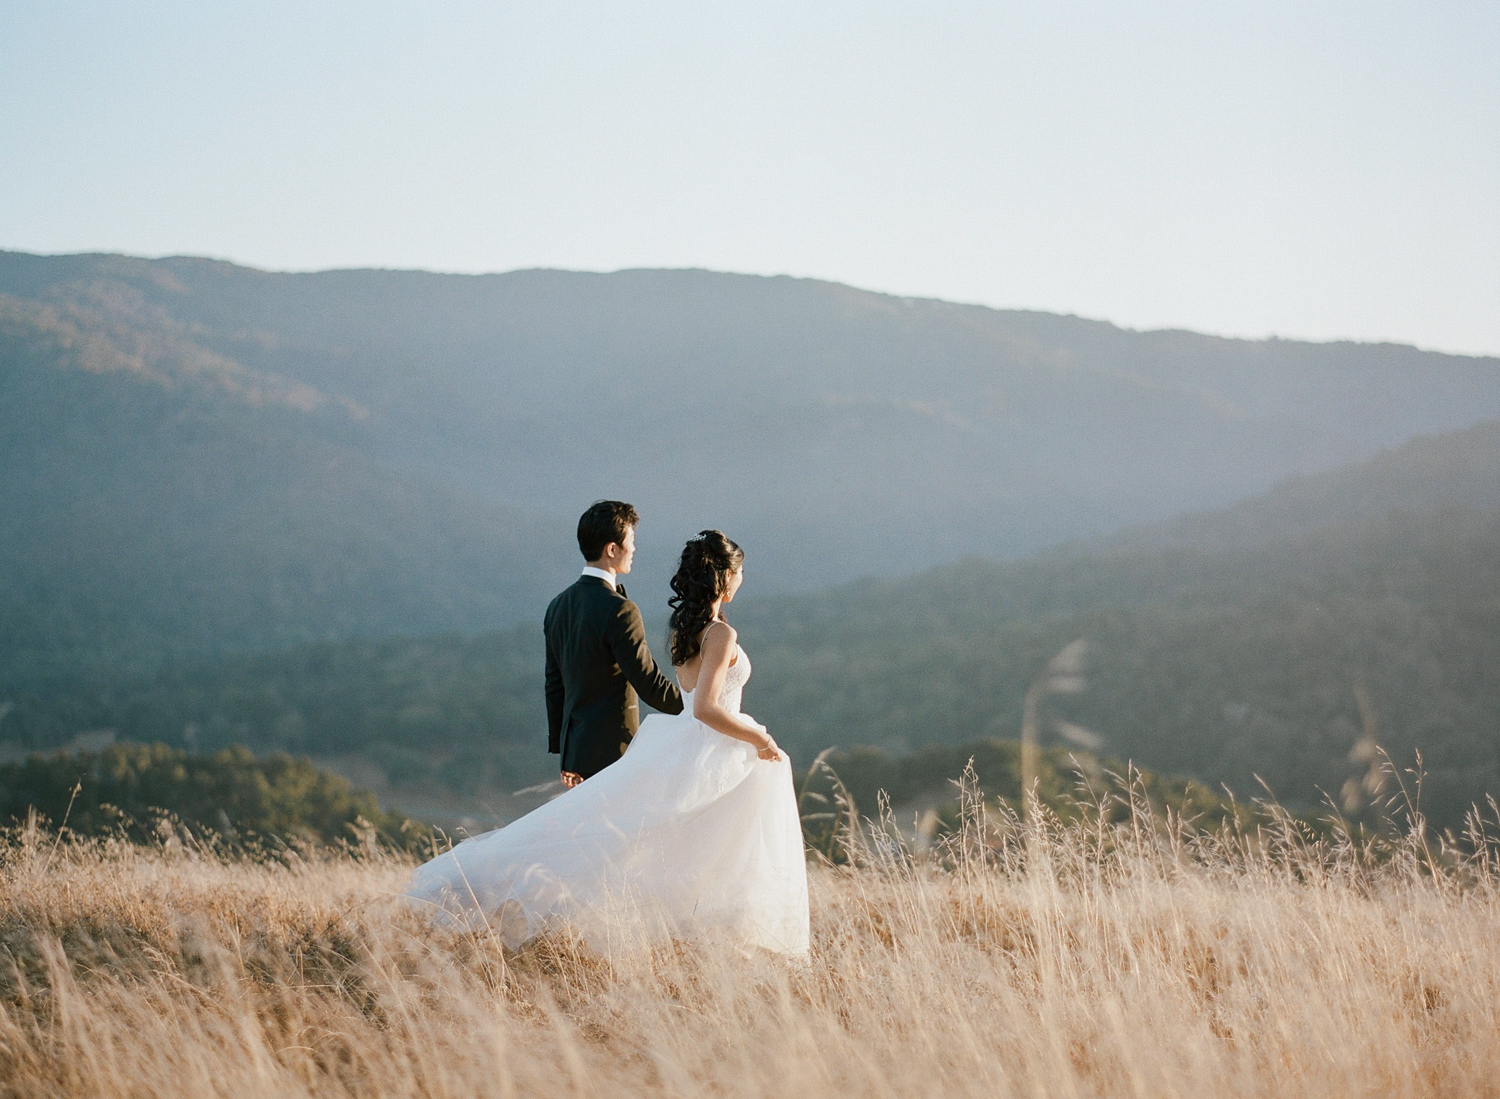 Bride and groom among the grass fields in the hills above Carmel, California at sunset; Sylvie Gil Photography